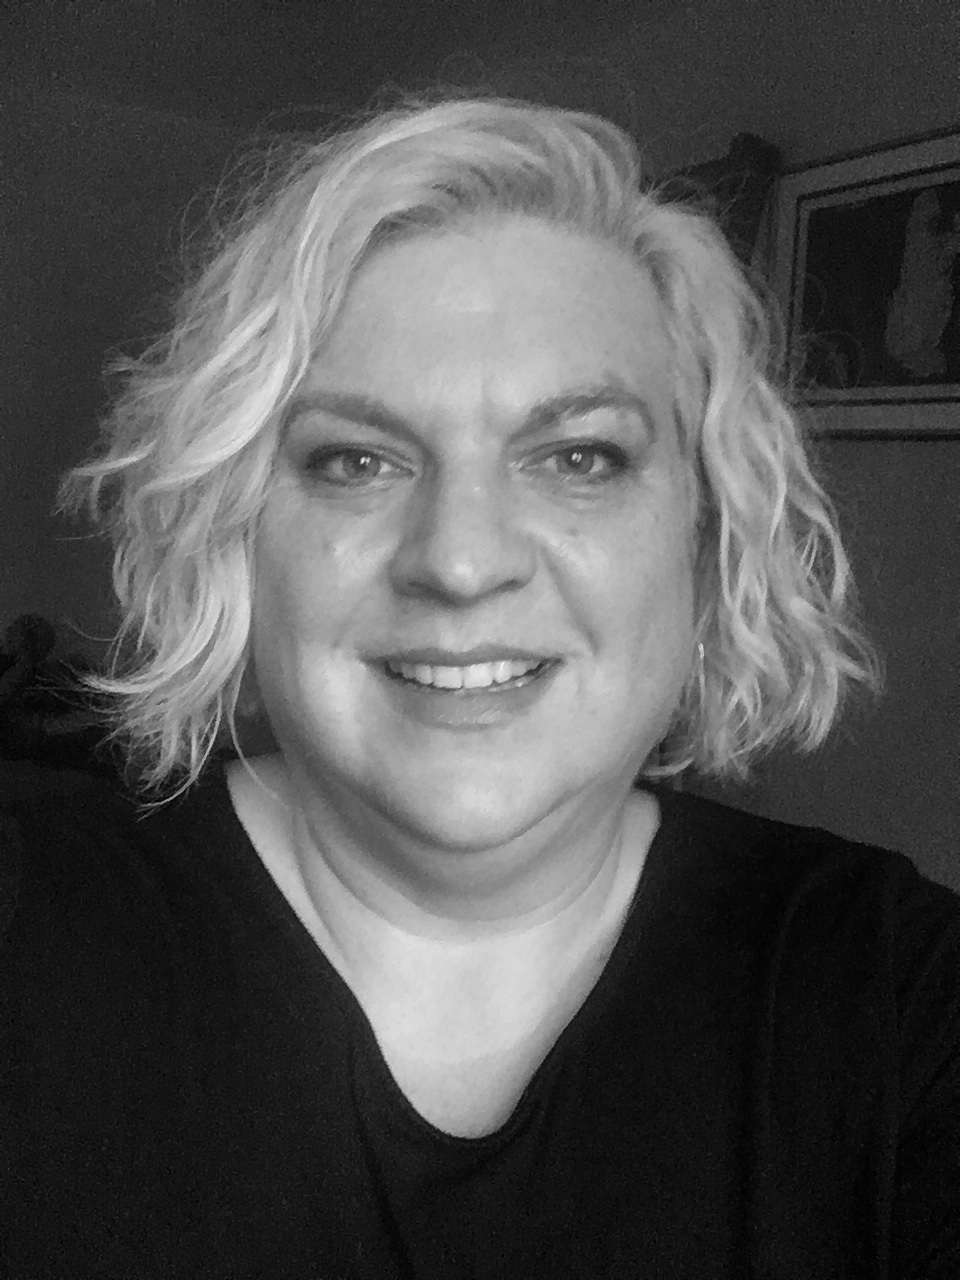 Corrina Hodgson - Corrina Hodgson is a queer, disabled playwright from Toronto, currently living in Montreal. She is the co-founder and co-producer of The Rose Festival, and is grateful to be part of such a welcoming and vibrant arts scene.